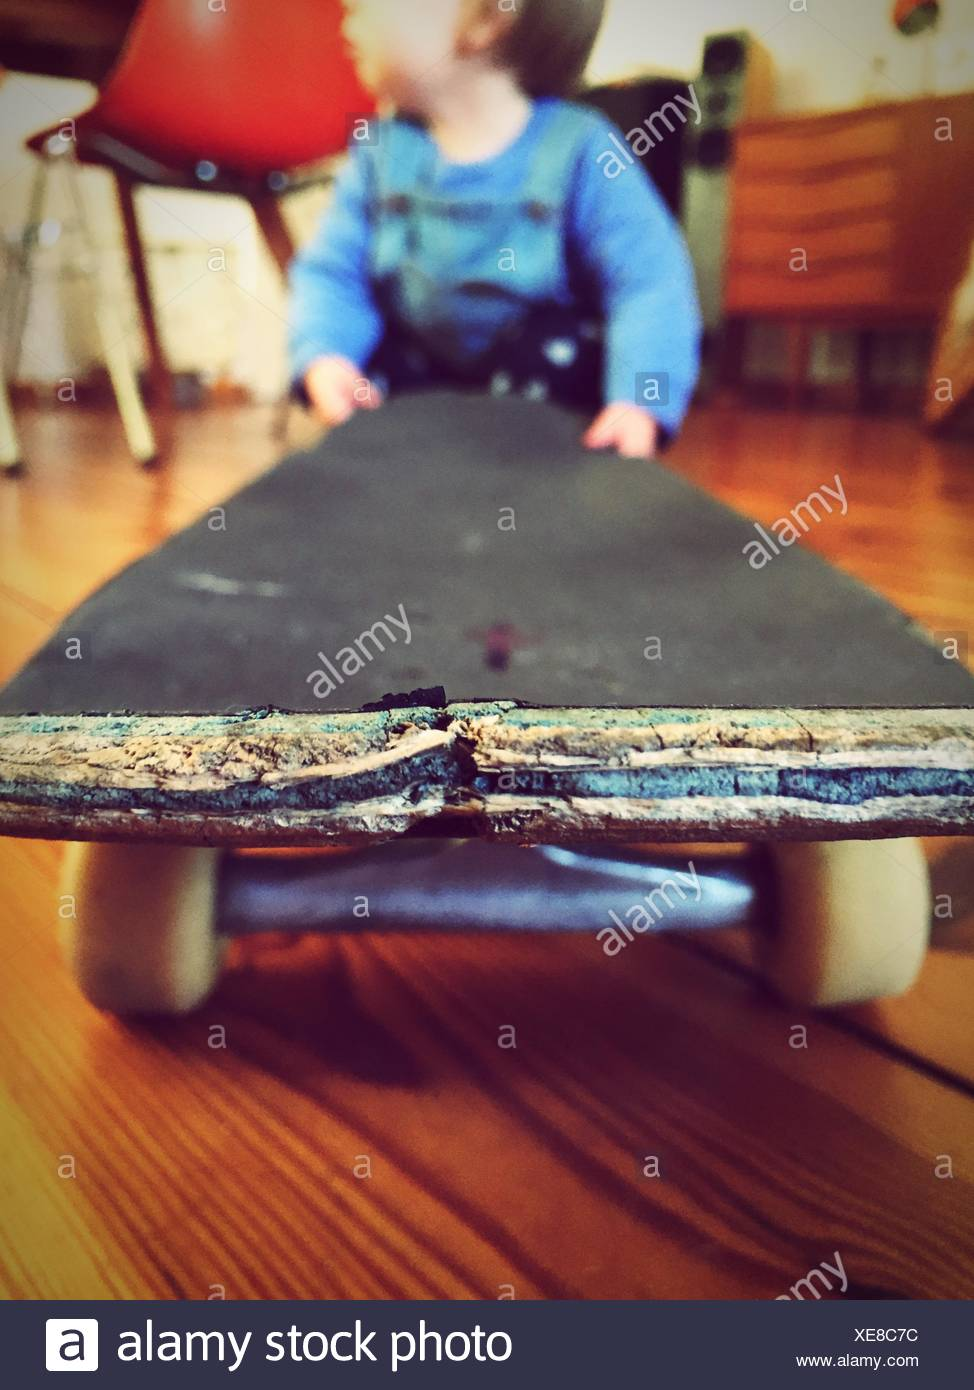 Baby Playing With Skateboard At Home - Stock Image